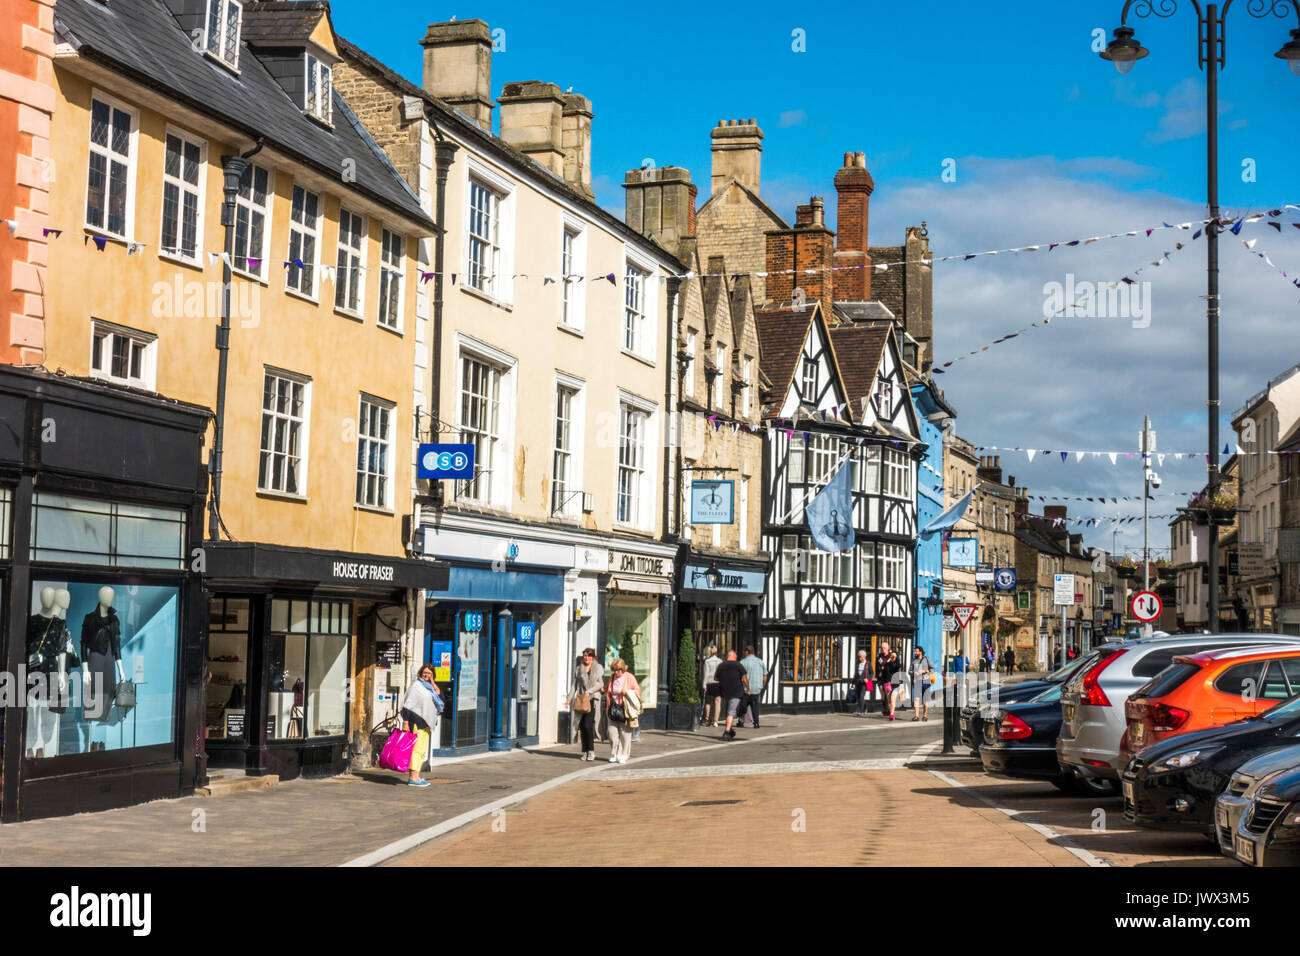 Shops and shoppers in the centre of the Cotswolds town of Cirencester, Gloucestershire, England, UK. Stock Photo